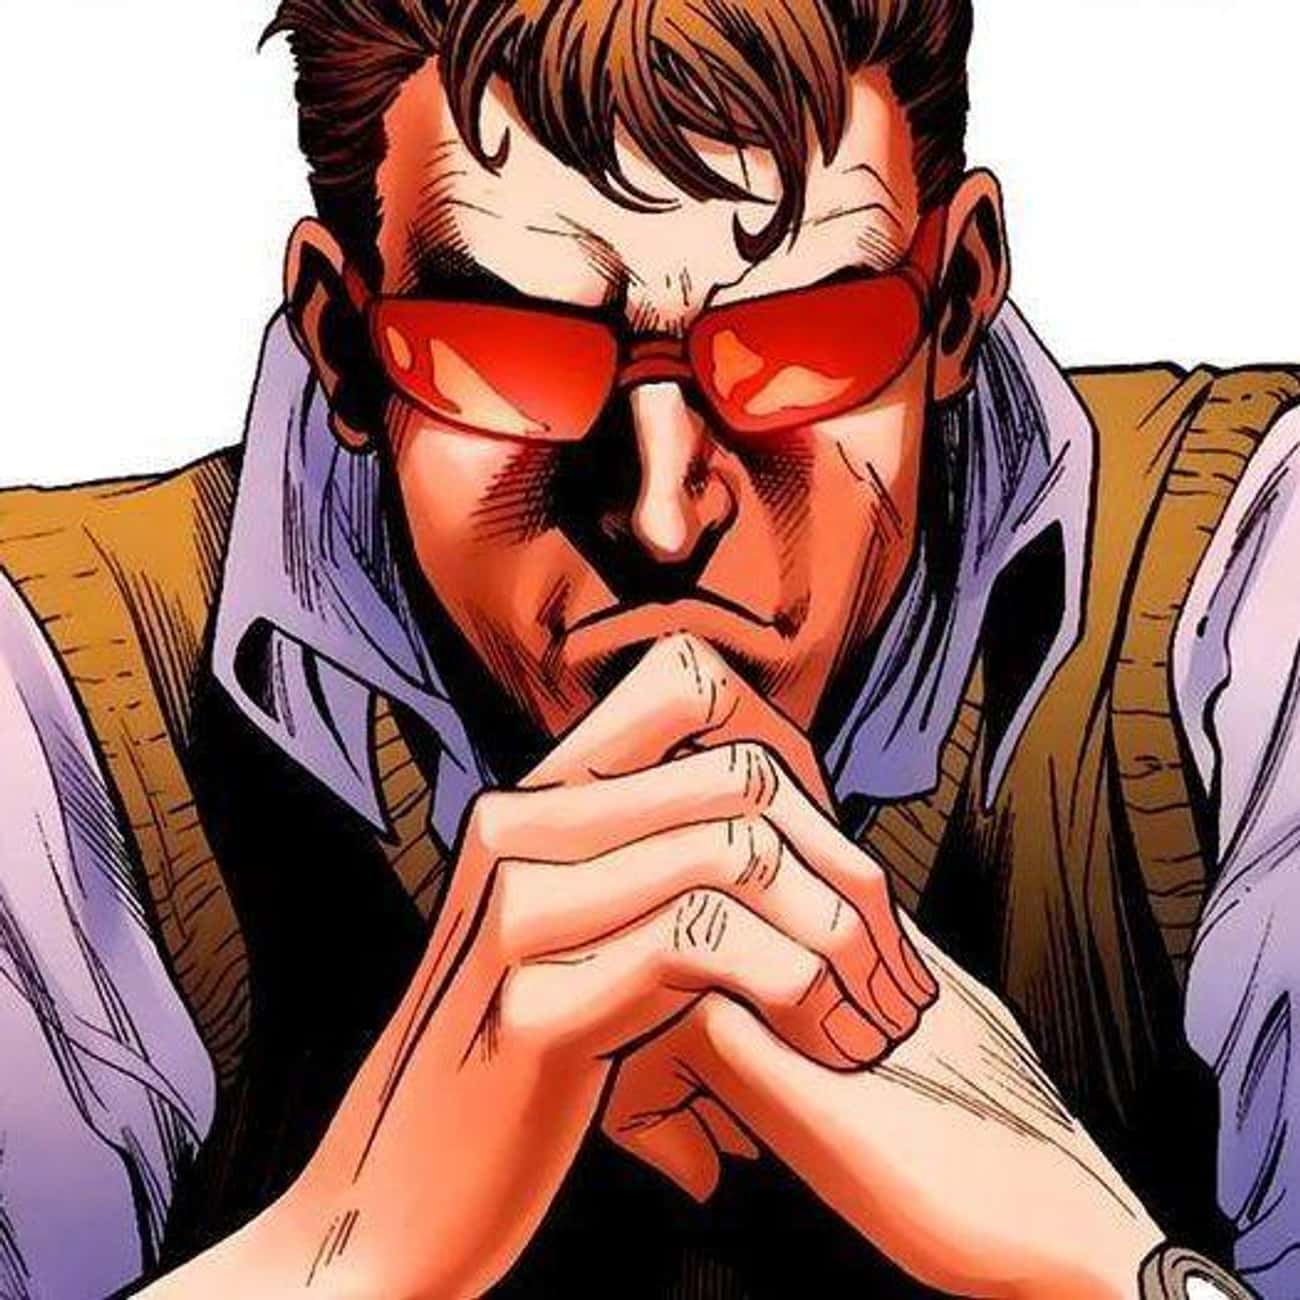 Cyclops is listed (or ranked) 1 on the list The Best Superheroes Who Wear Glasses